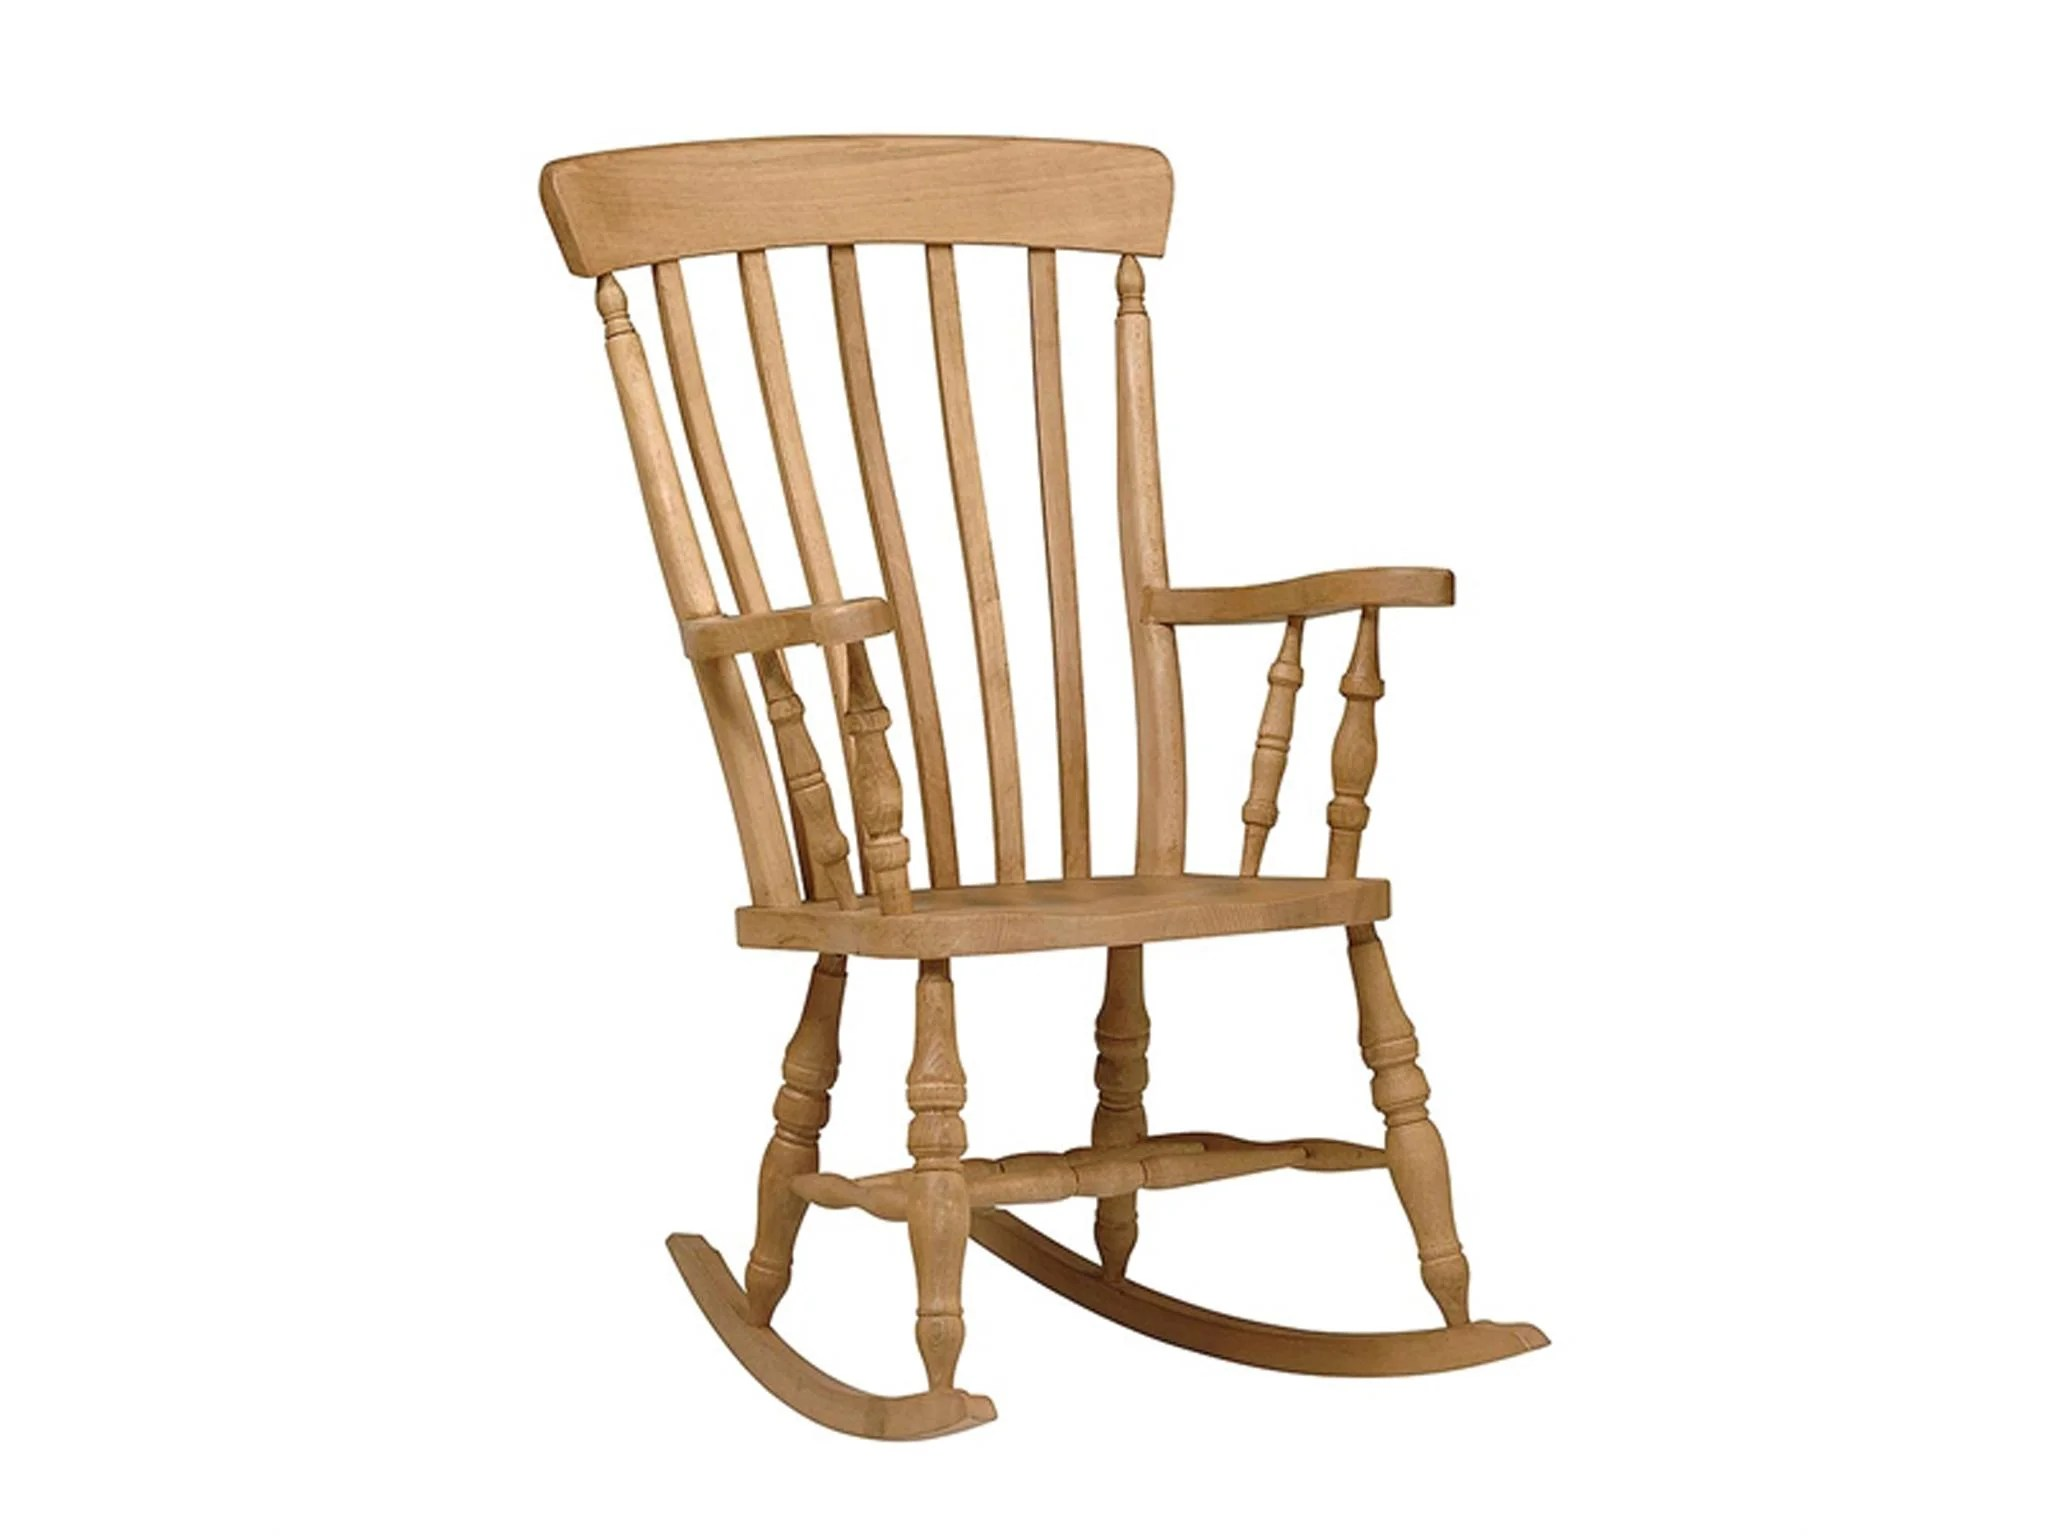 what is a rocking chair hostess dining chairs 10 best the independent if you get all nostalgic when think about this one made for full of farmhouse charm it s in traditional beech with